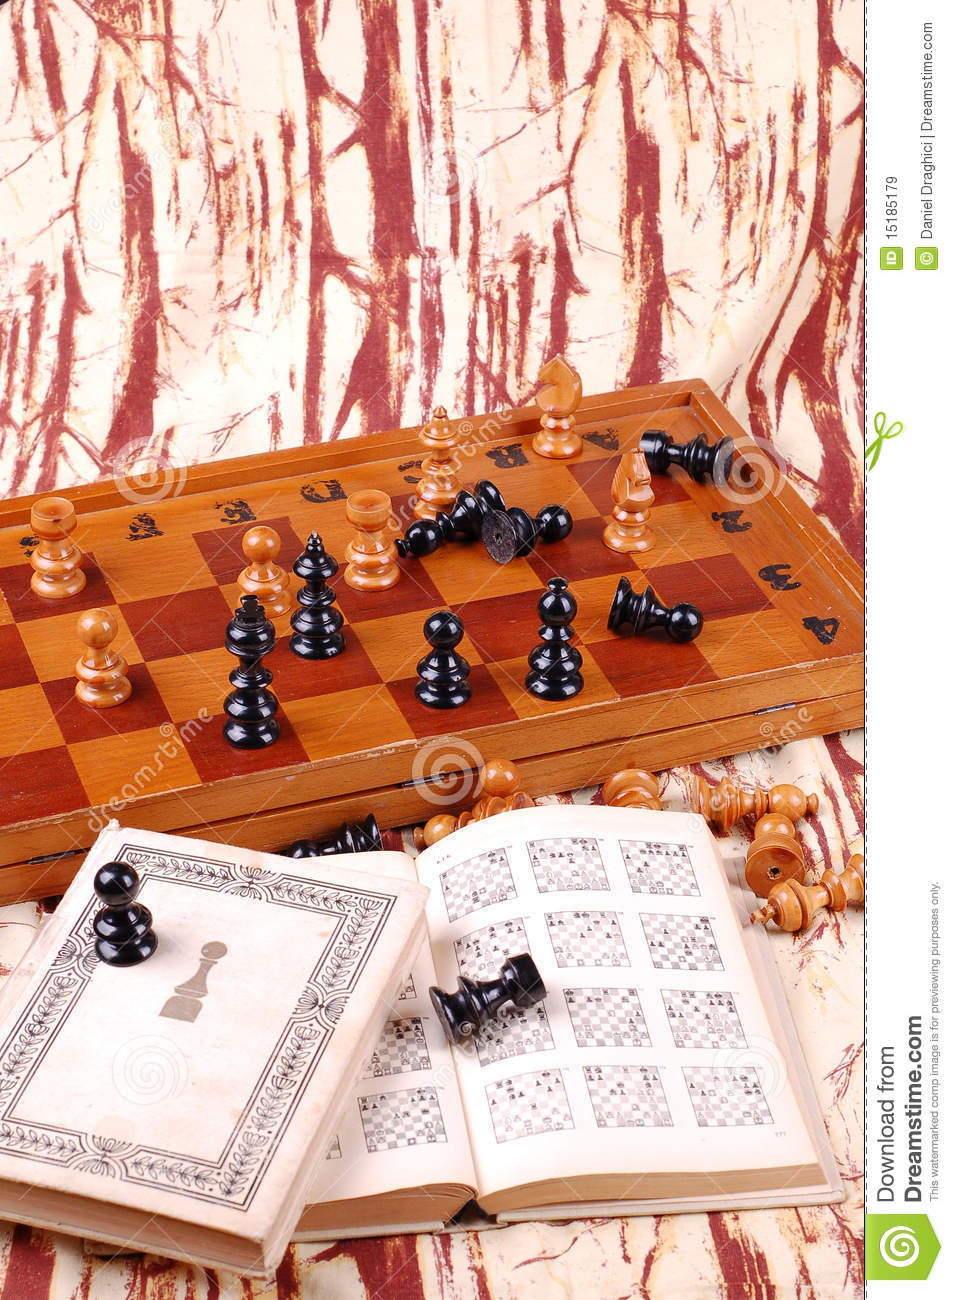 Chess Table And Chess Book Stock Image Image Of Decor 15185179